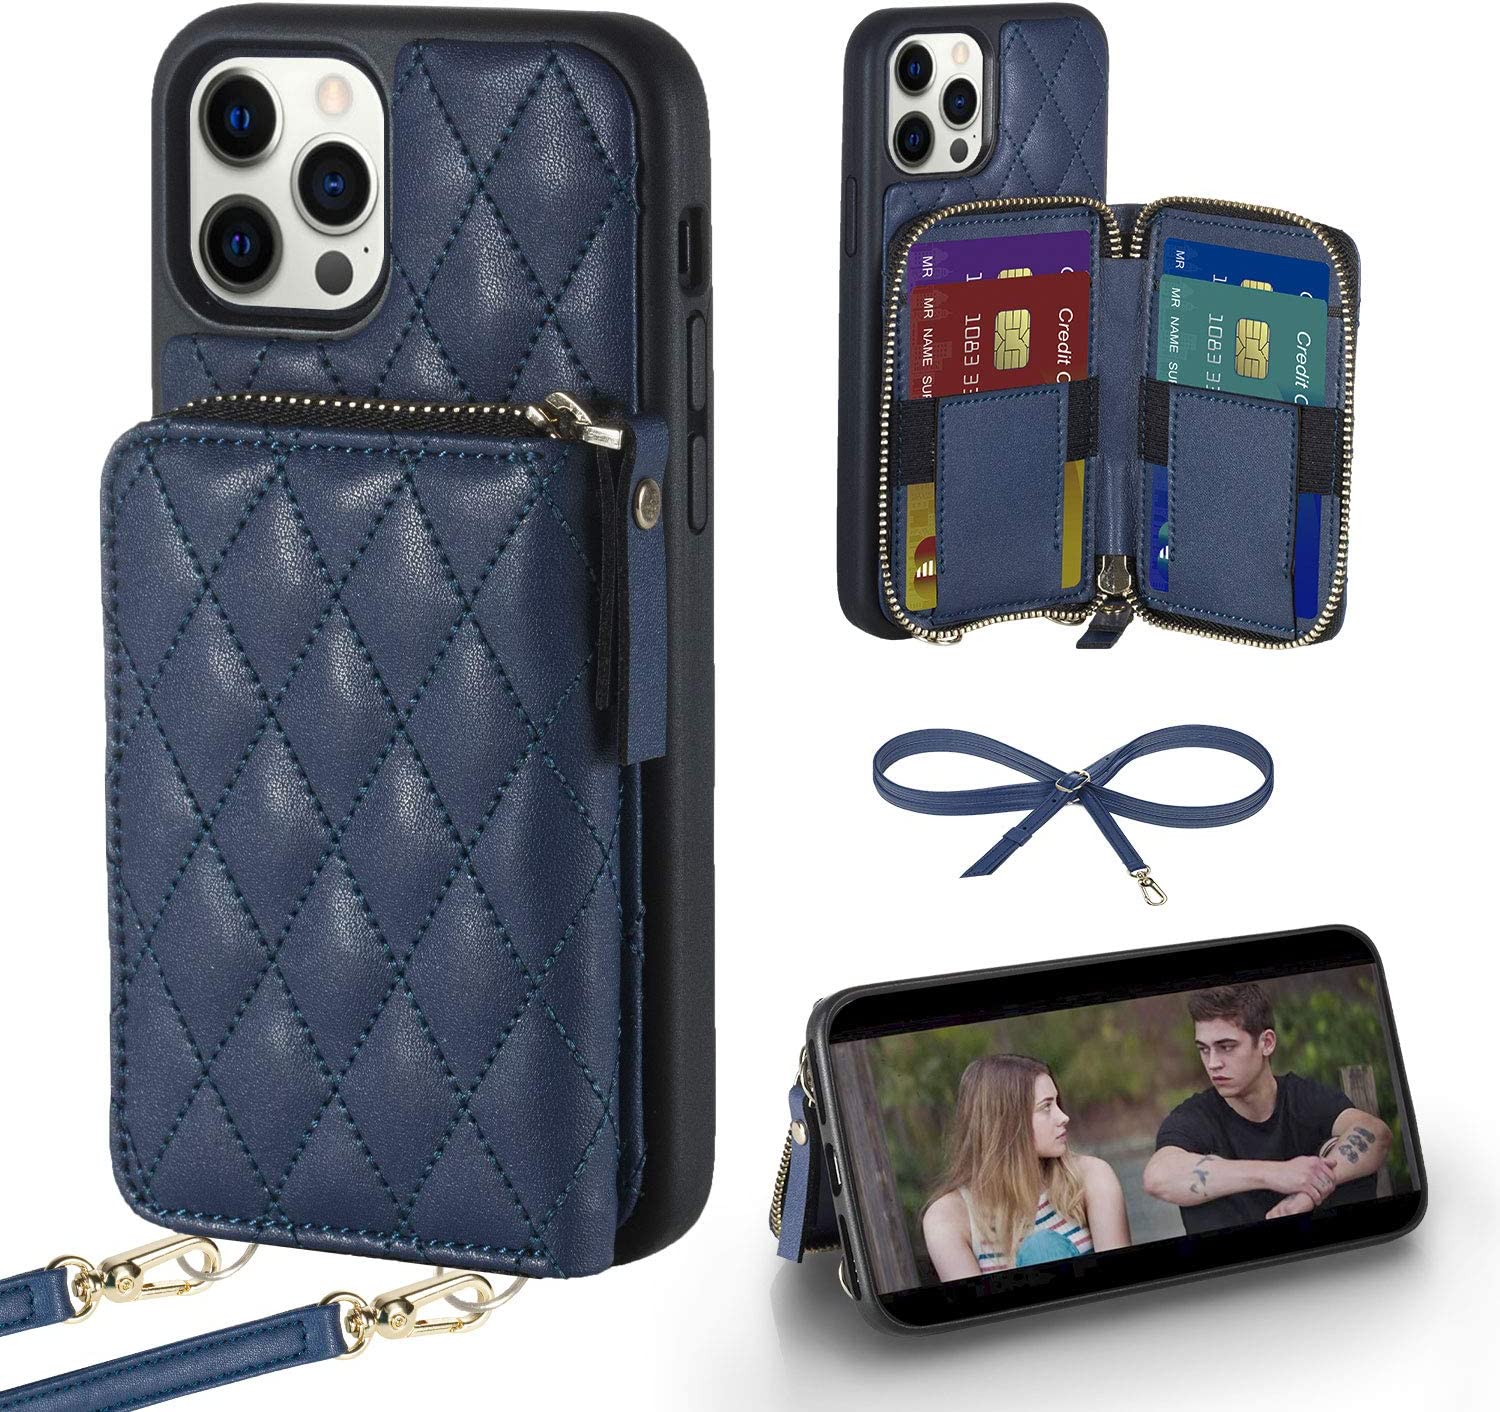 LAMEEKU iPhone 11 Pro Max Wallet Case, iPhone 11 Pro Max Card Holder Case Crossbody Purse Case Quilted Leather Lady Handbag Case Shockproof Case Compatible with iPhone 11 Pro Max, 6.5